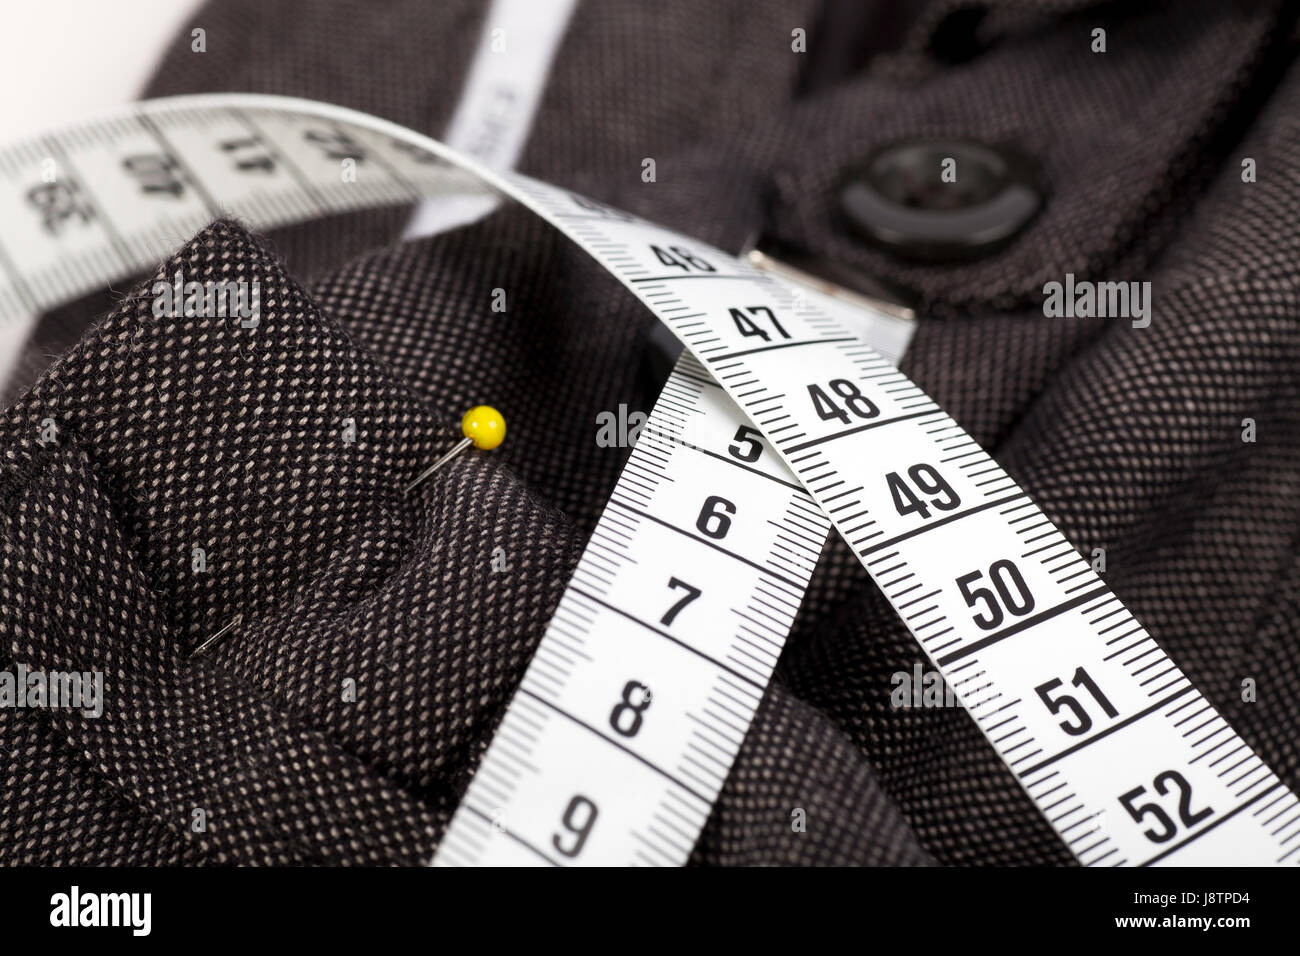 centimeter, sewing, cloth, pin, pants, measured, sured, measure, textile, sew, - Stock Image